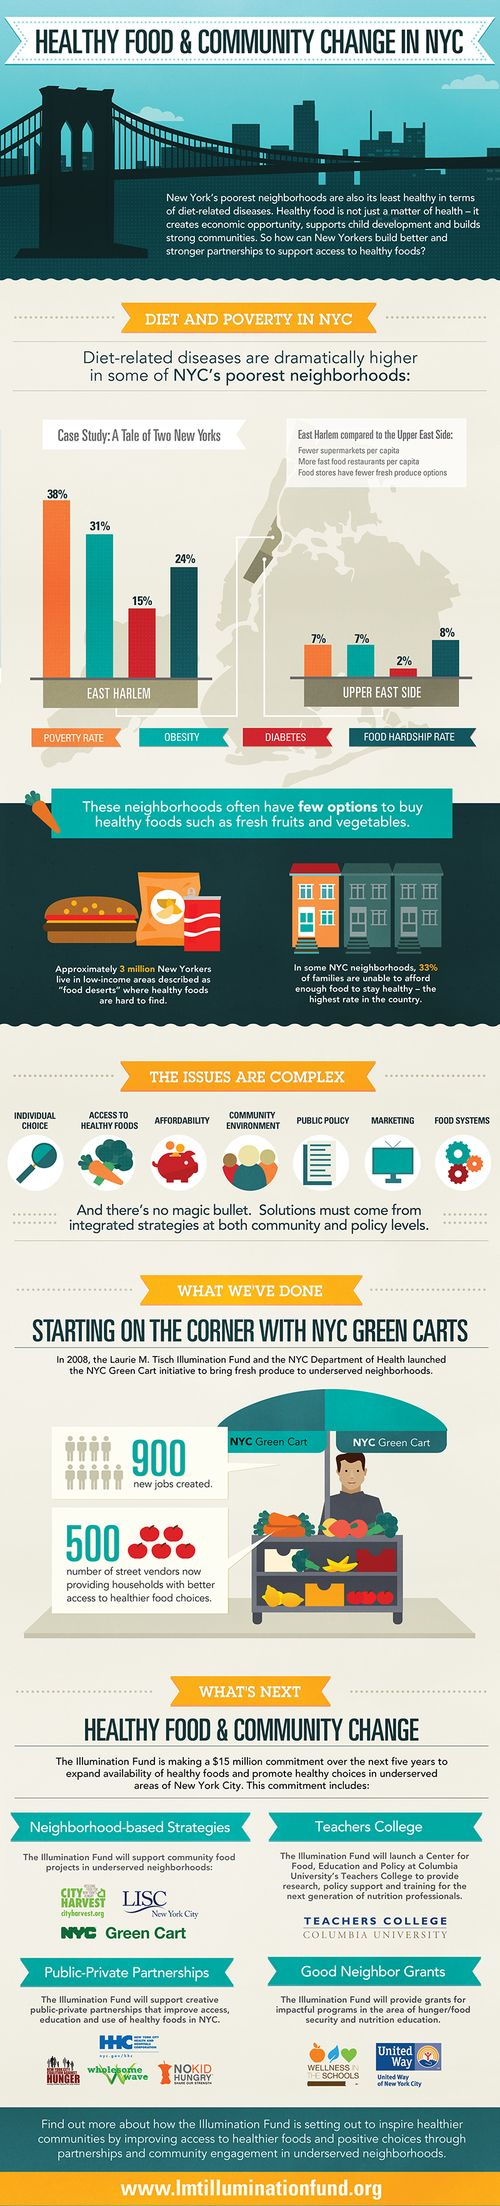 Infographic_healthy_food_NYC